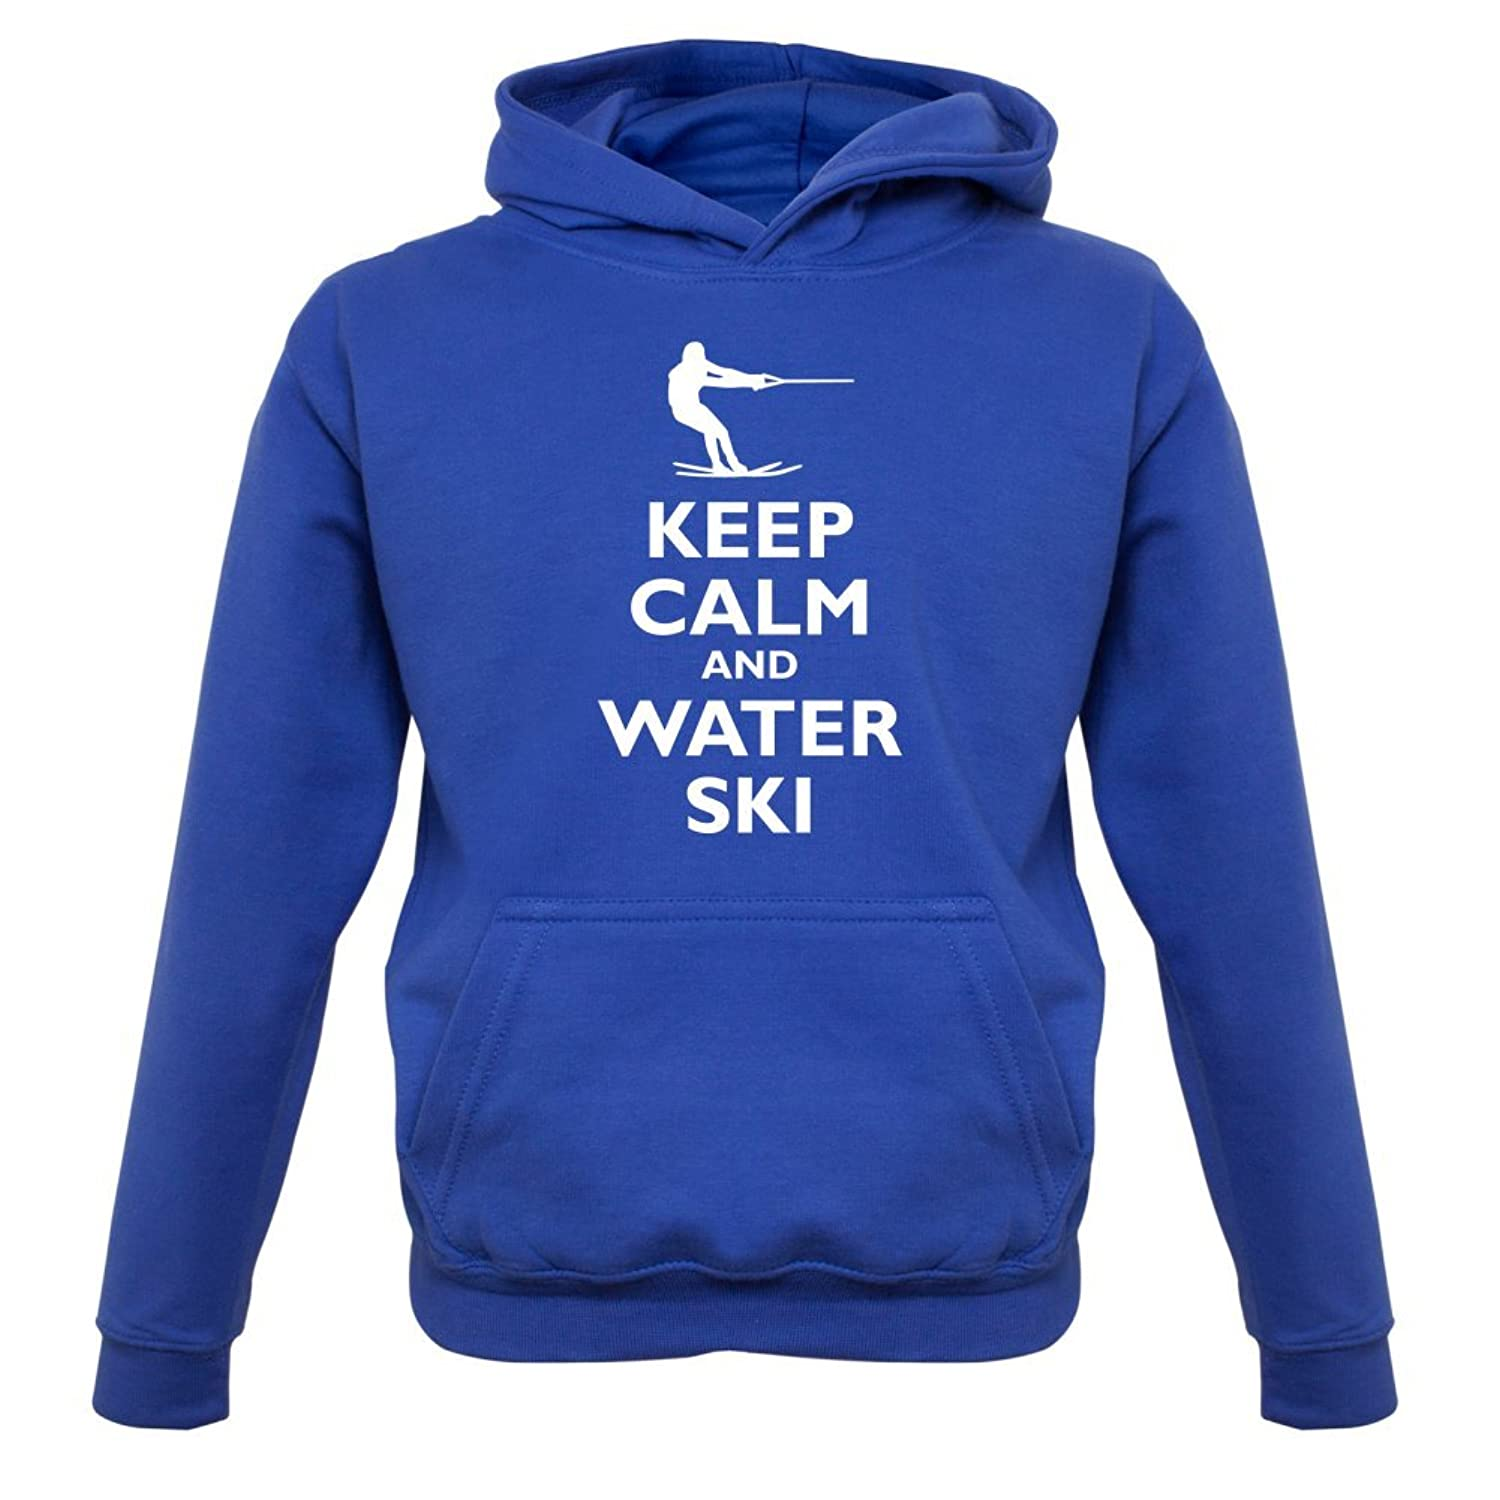 Keep Calm and Water Ski - Kinder Hoodie/Kapuzenpullover - 9 Farben - 1-13 Jahre